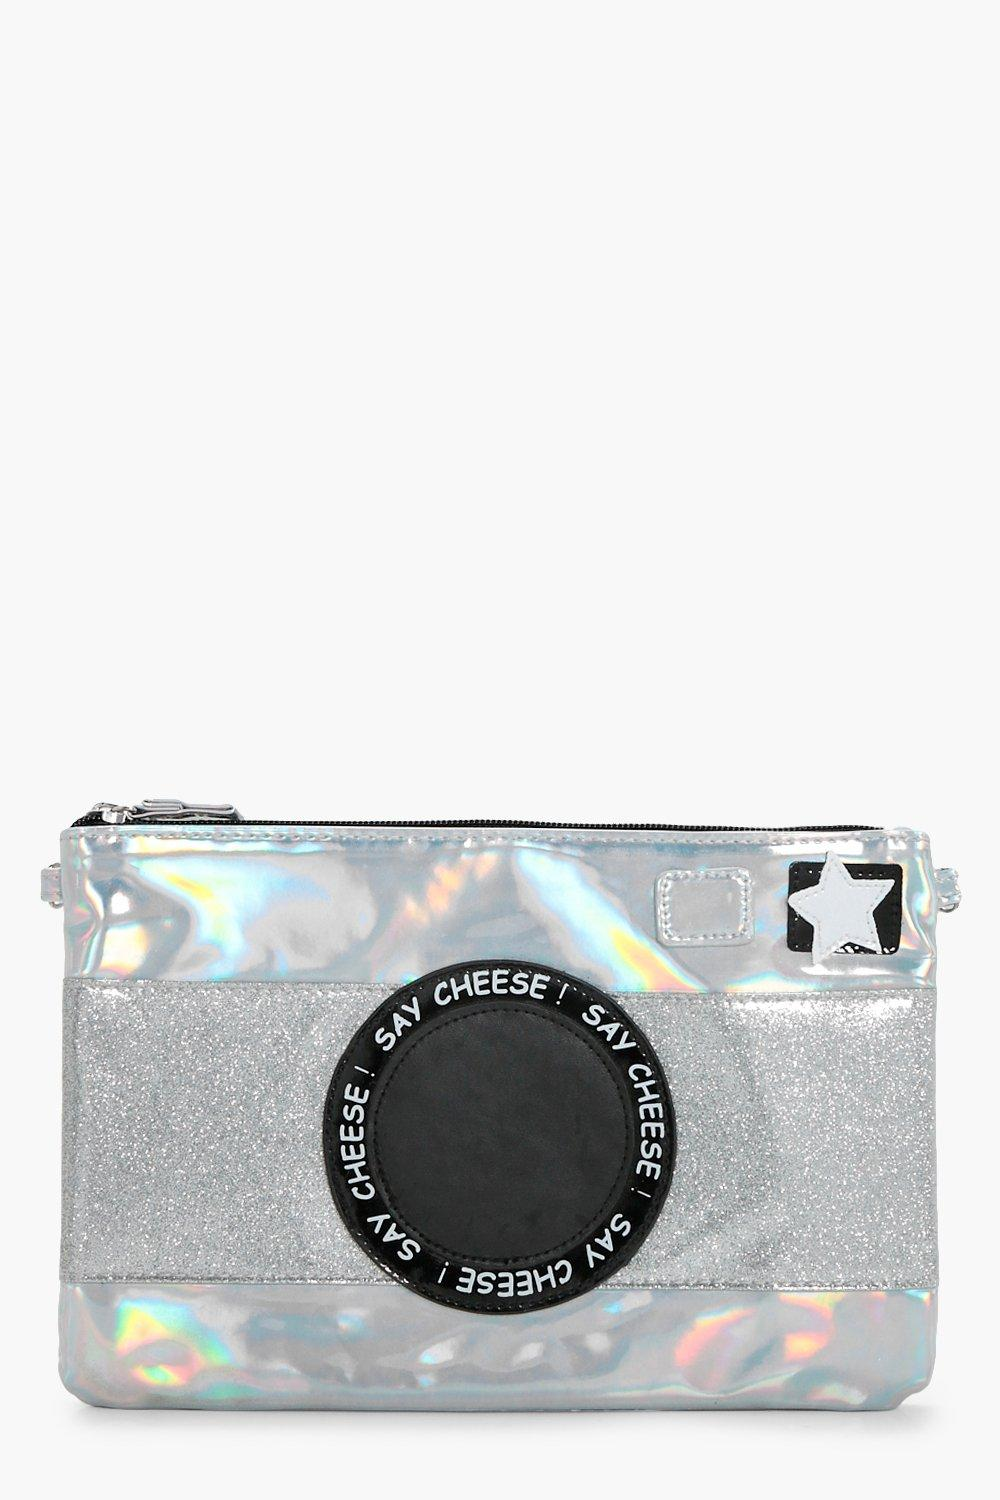 Camera Flash Metallic Bag - silver - Girls Camera